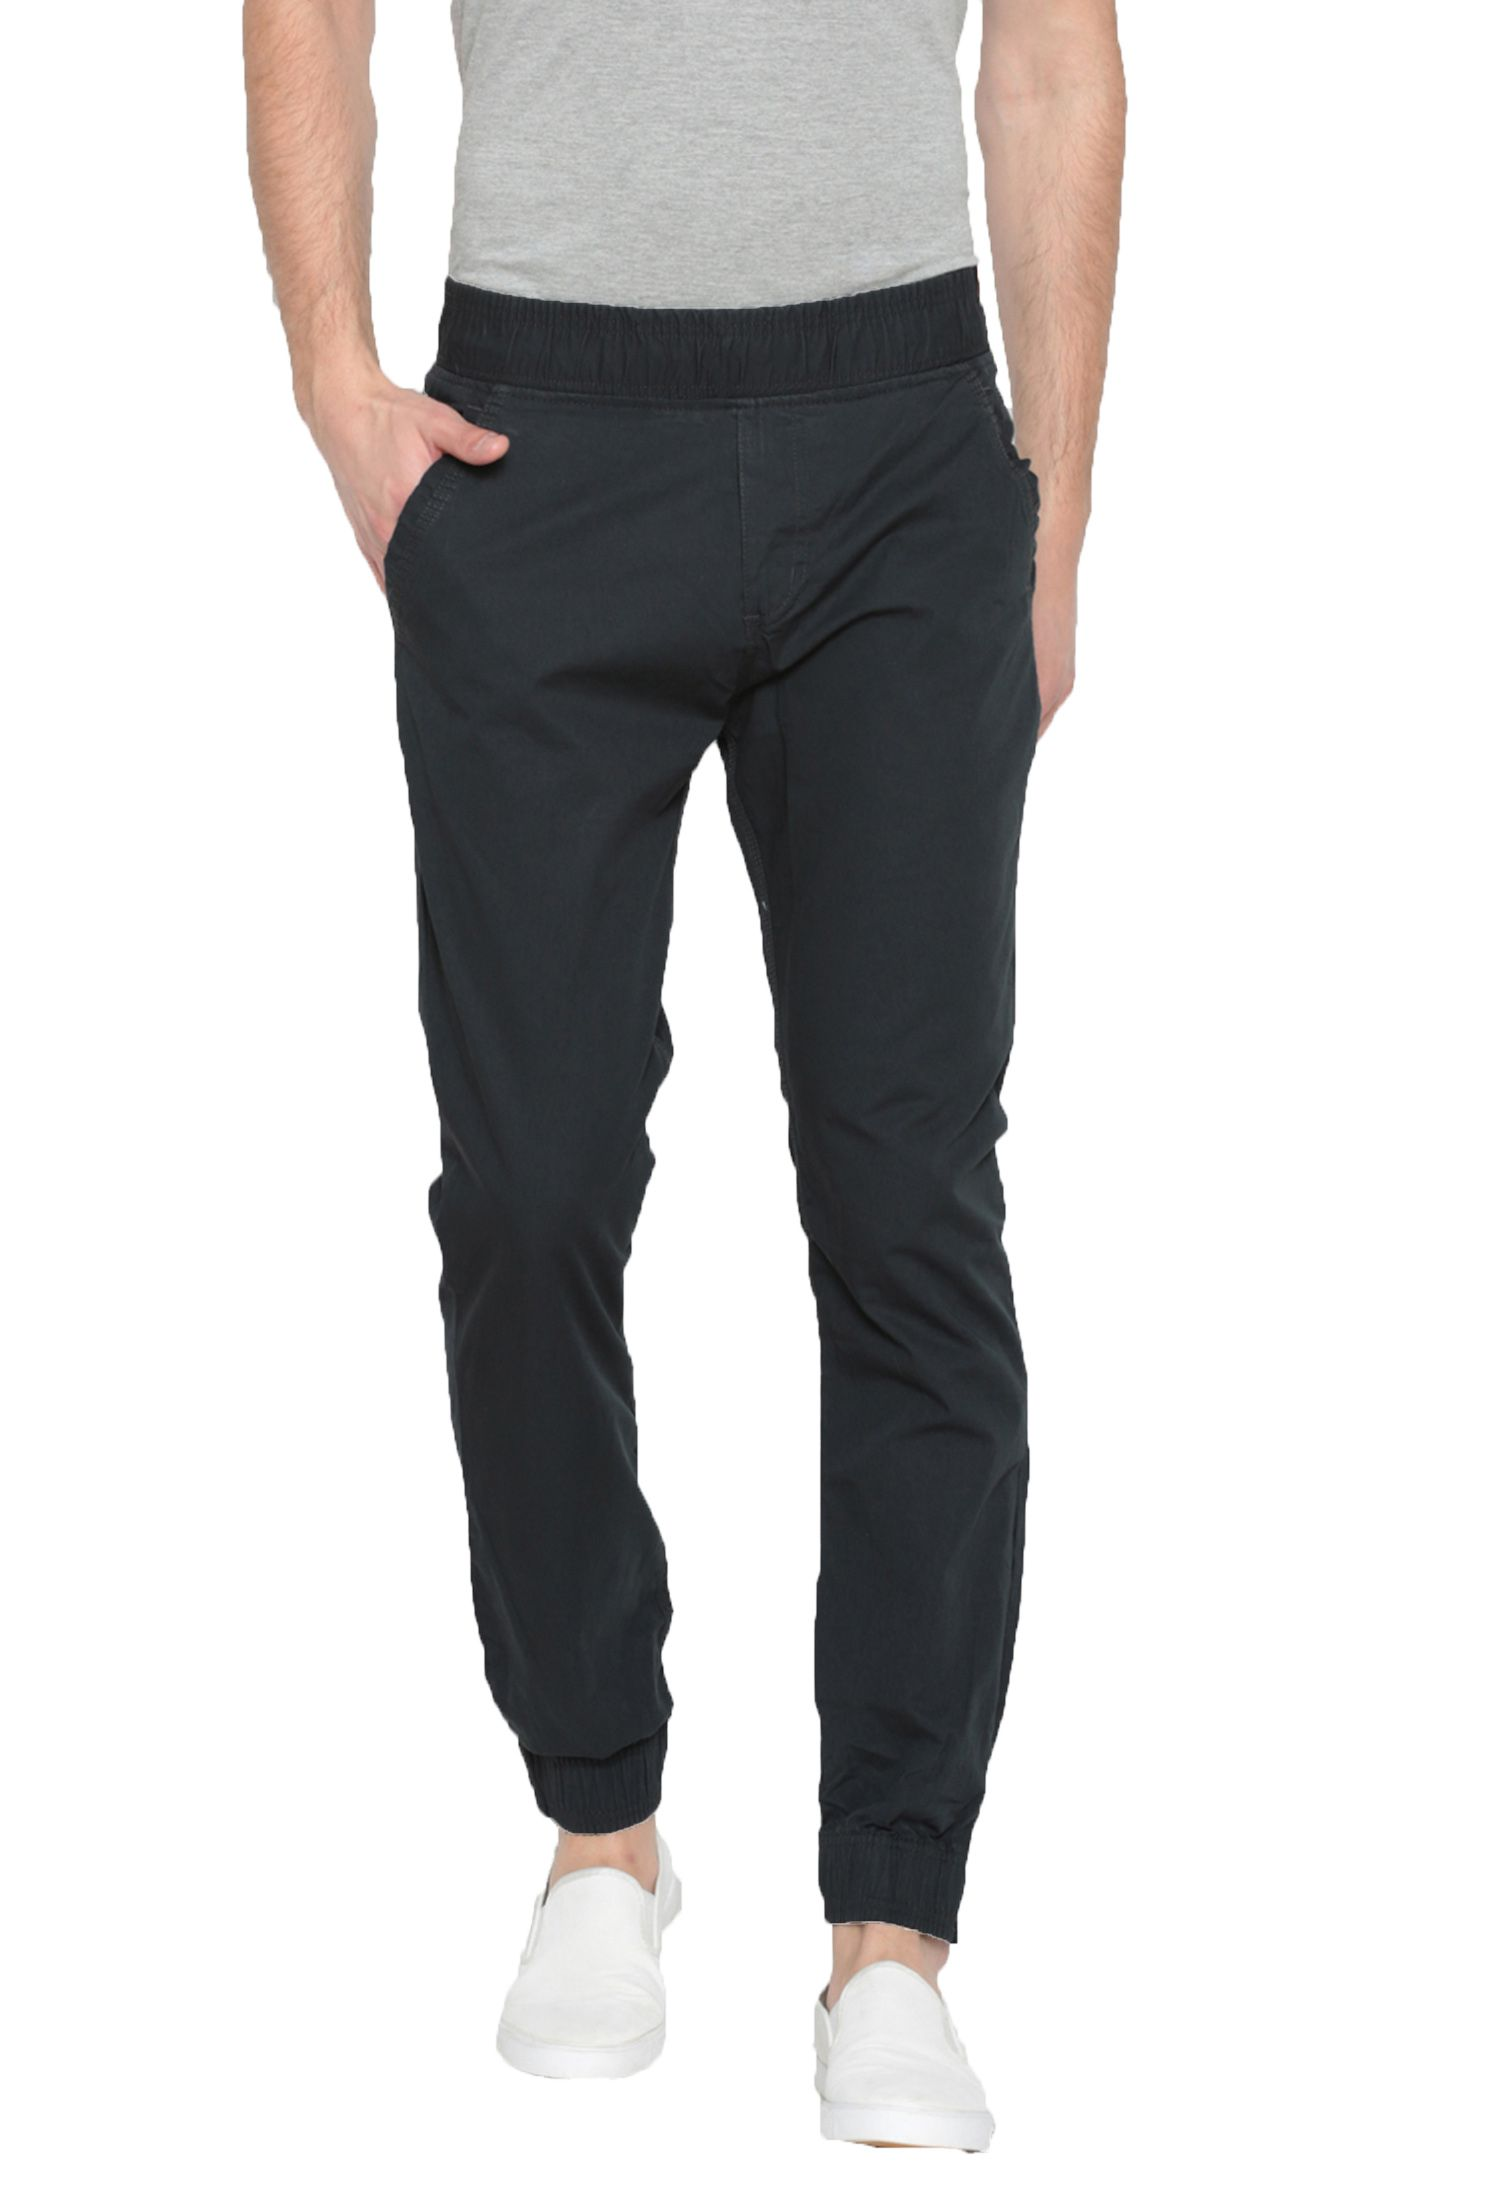 Sports 52 Wear Navy Blue Slim -Fit Flat Joggers